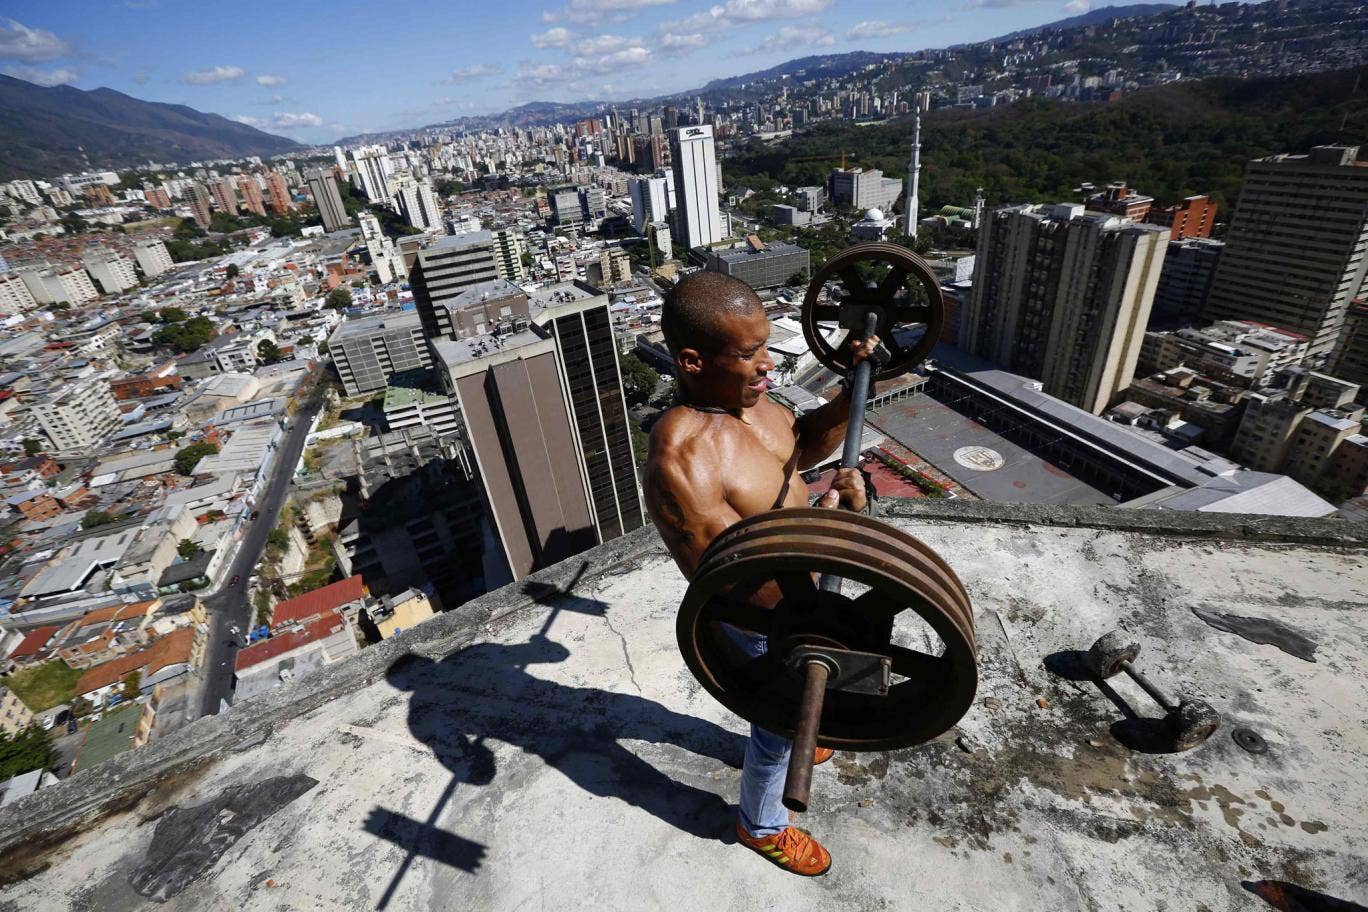 Gabriel Rivas (30) lifts weights on a balcony on the 28th floor of the 'Tower of David' skyscraper in Caracas